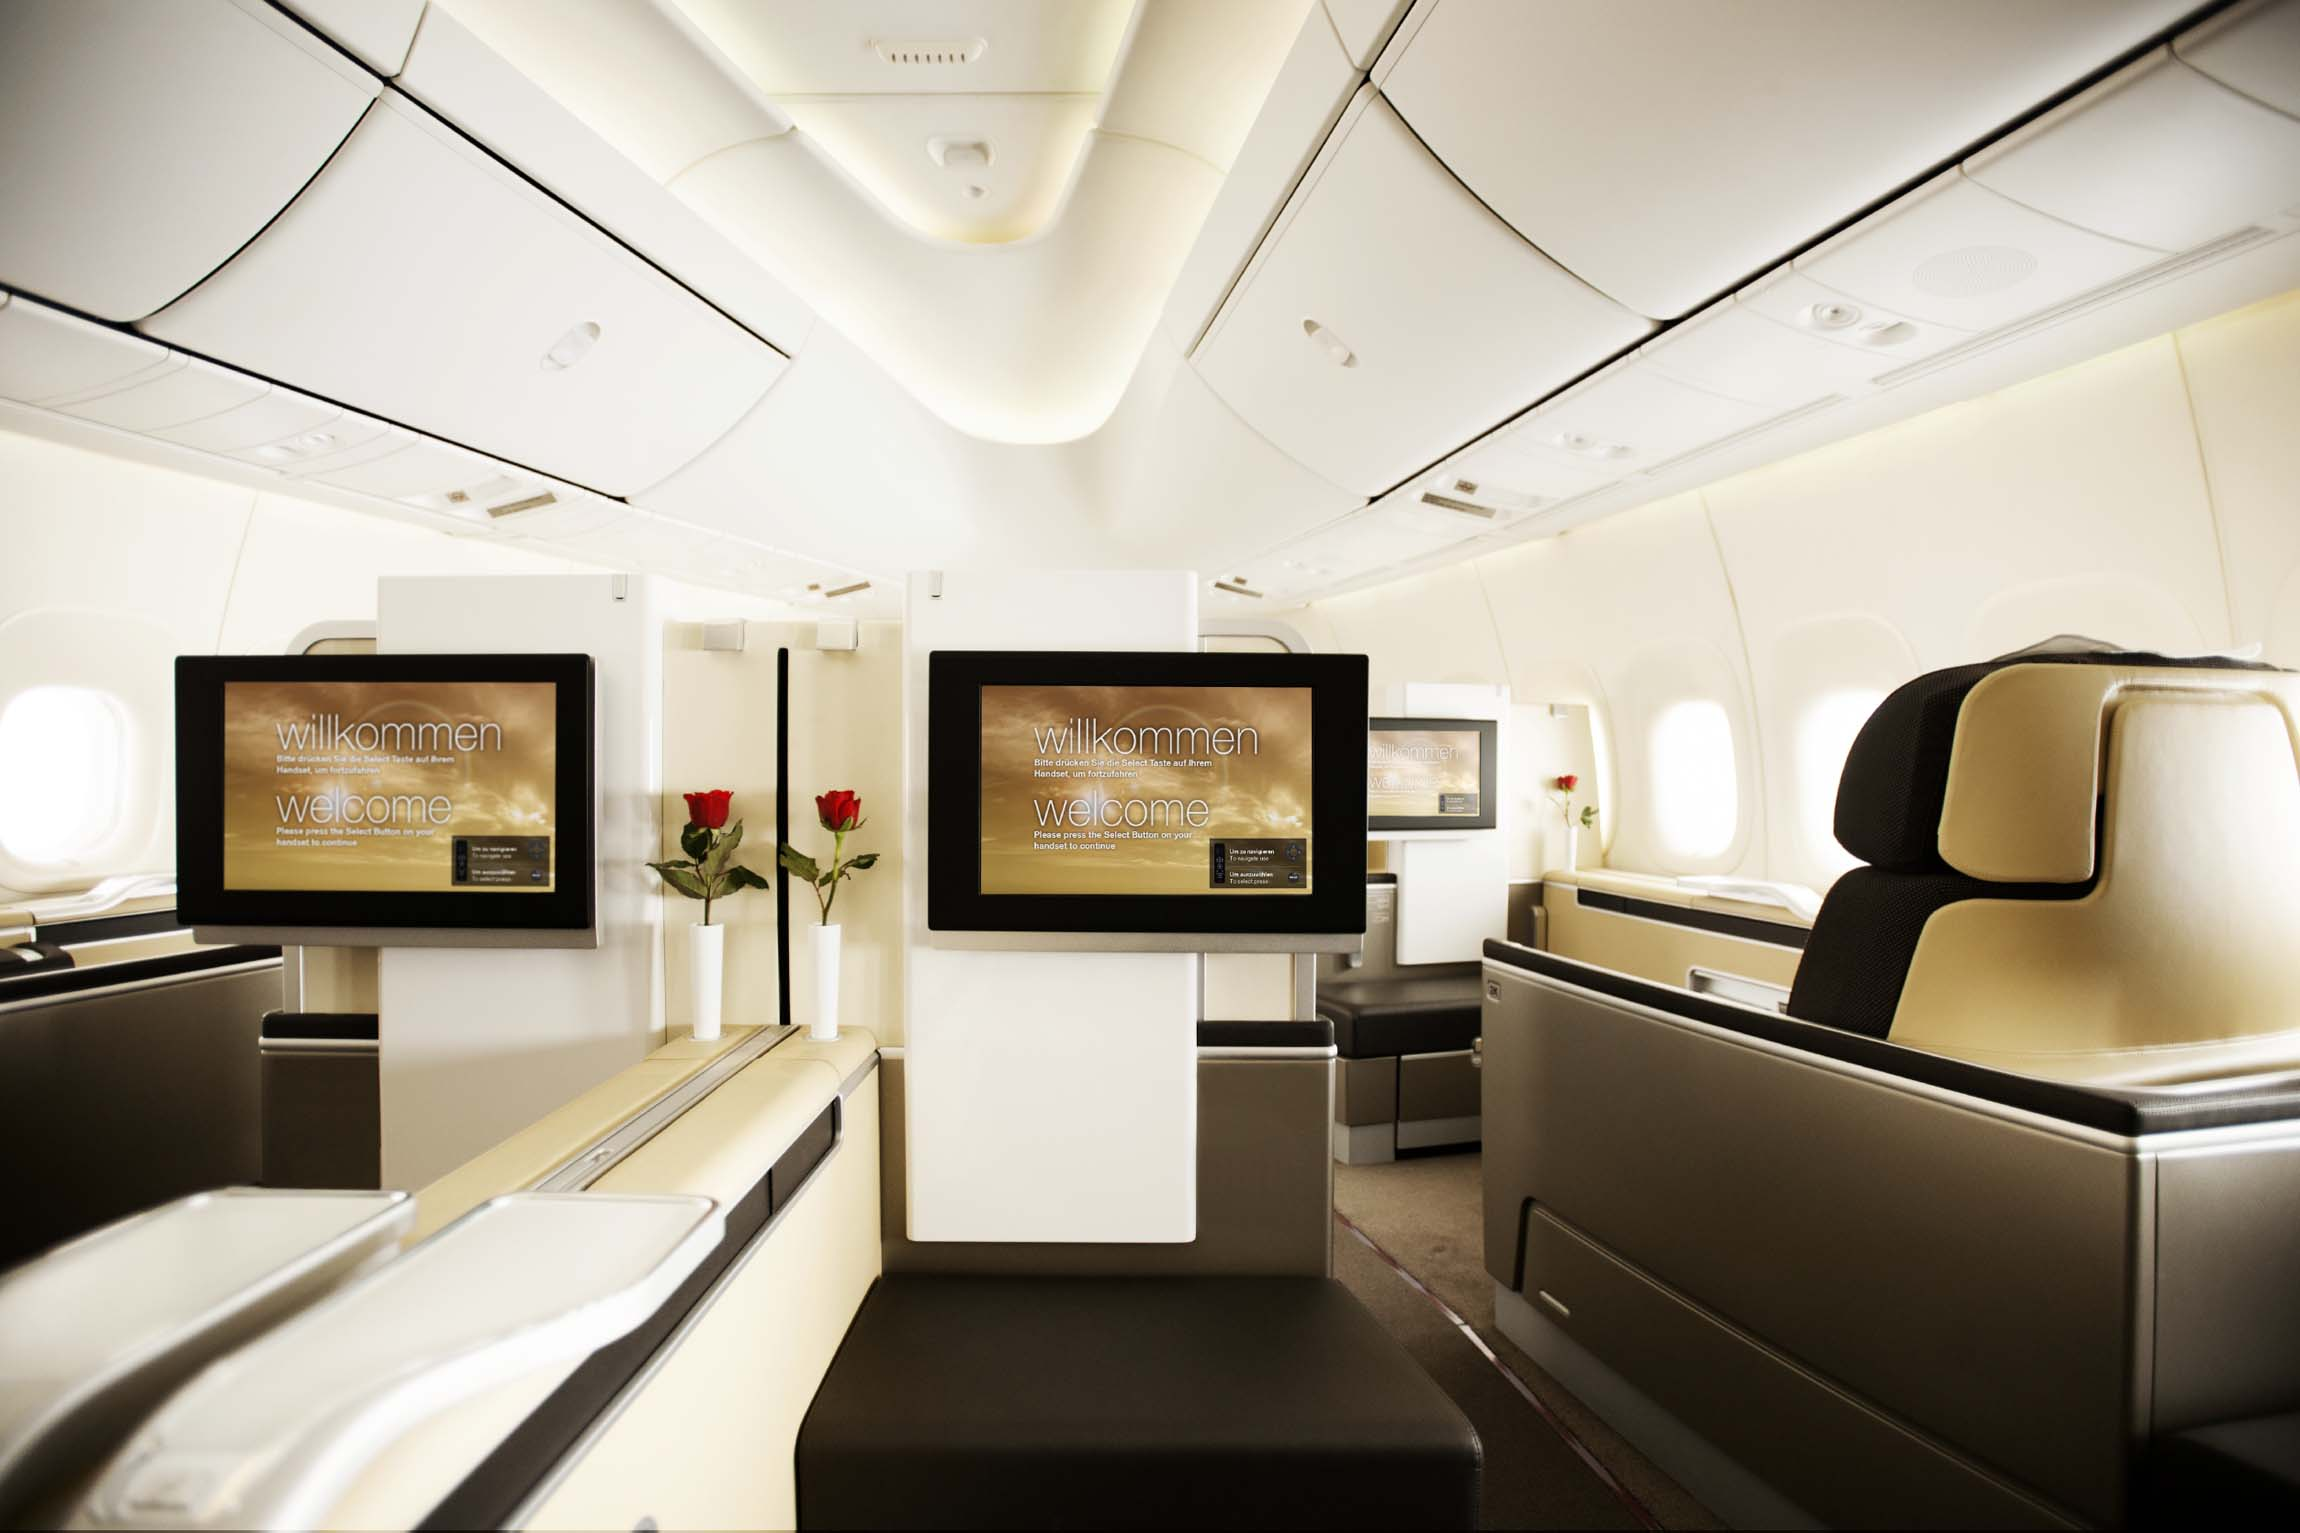 How to Fly Lufthansa First Class Later in 2014 with Pre-Devaluation United Miles